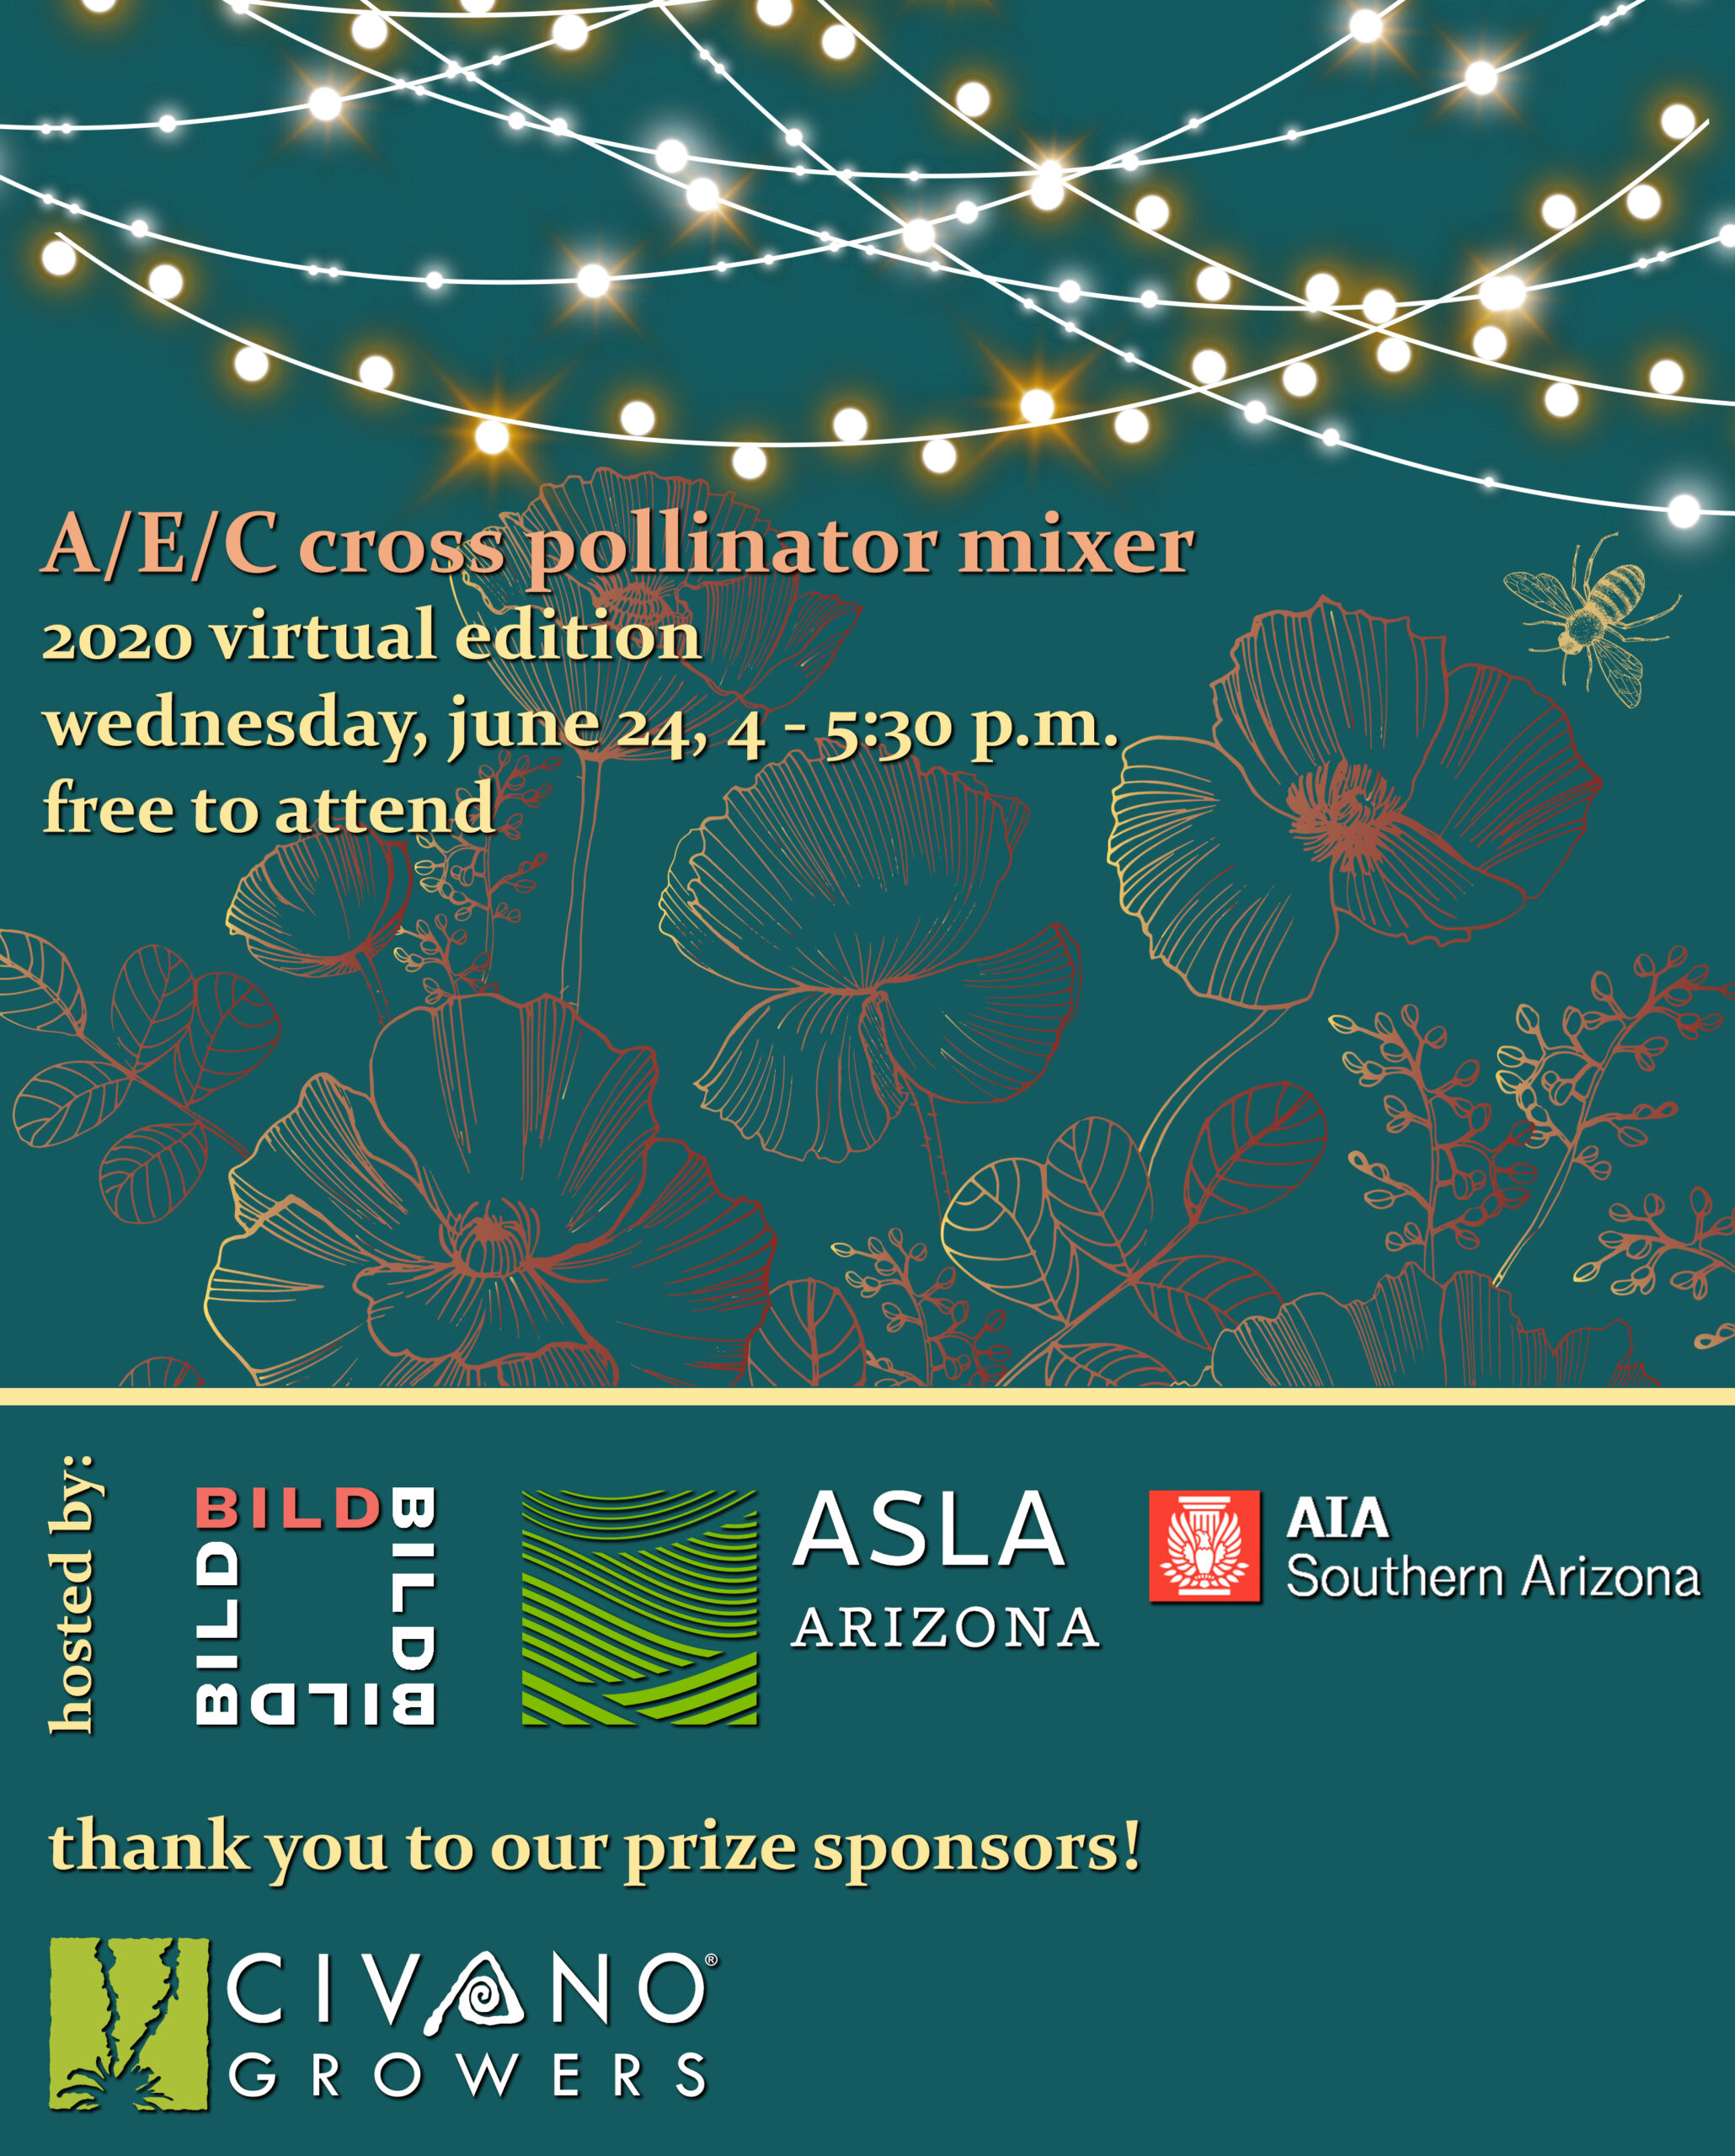 Join AIA, ASLA, BILD, and other AEC industry groups for a virtual mixer to mingle and learn more about what we can do to protect pollinators.